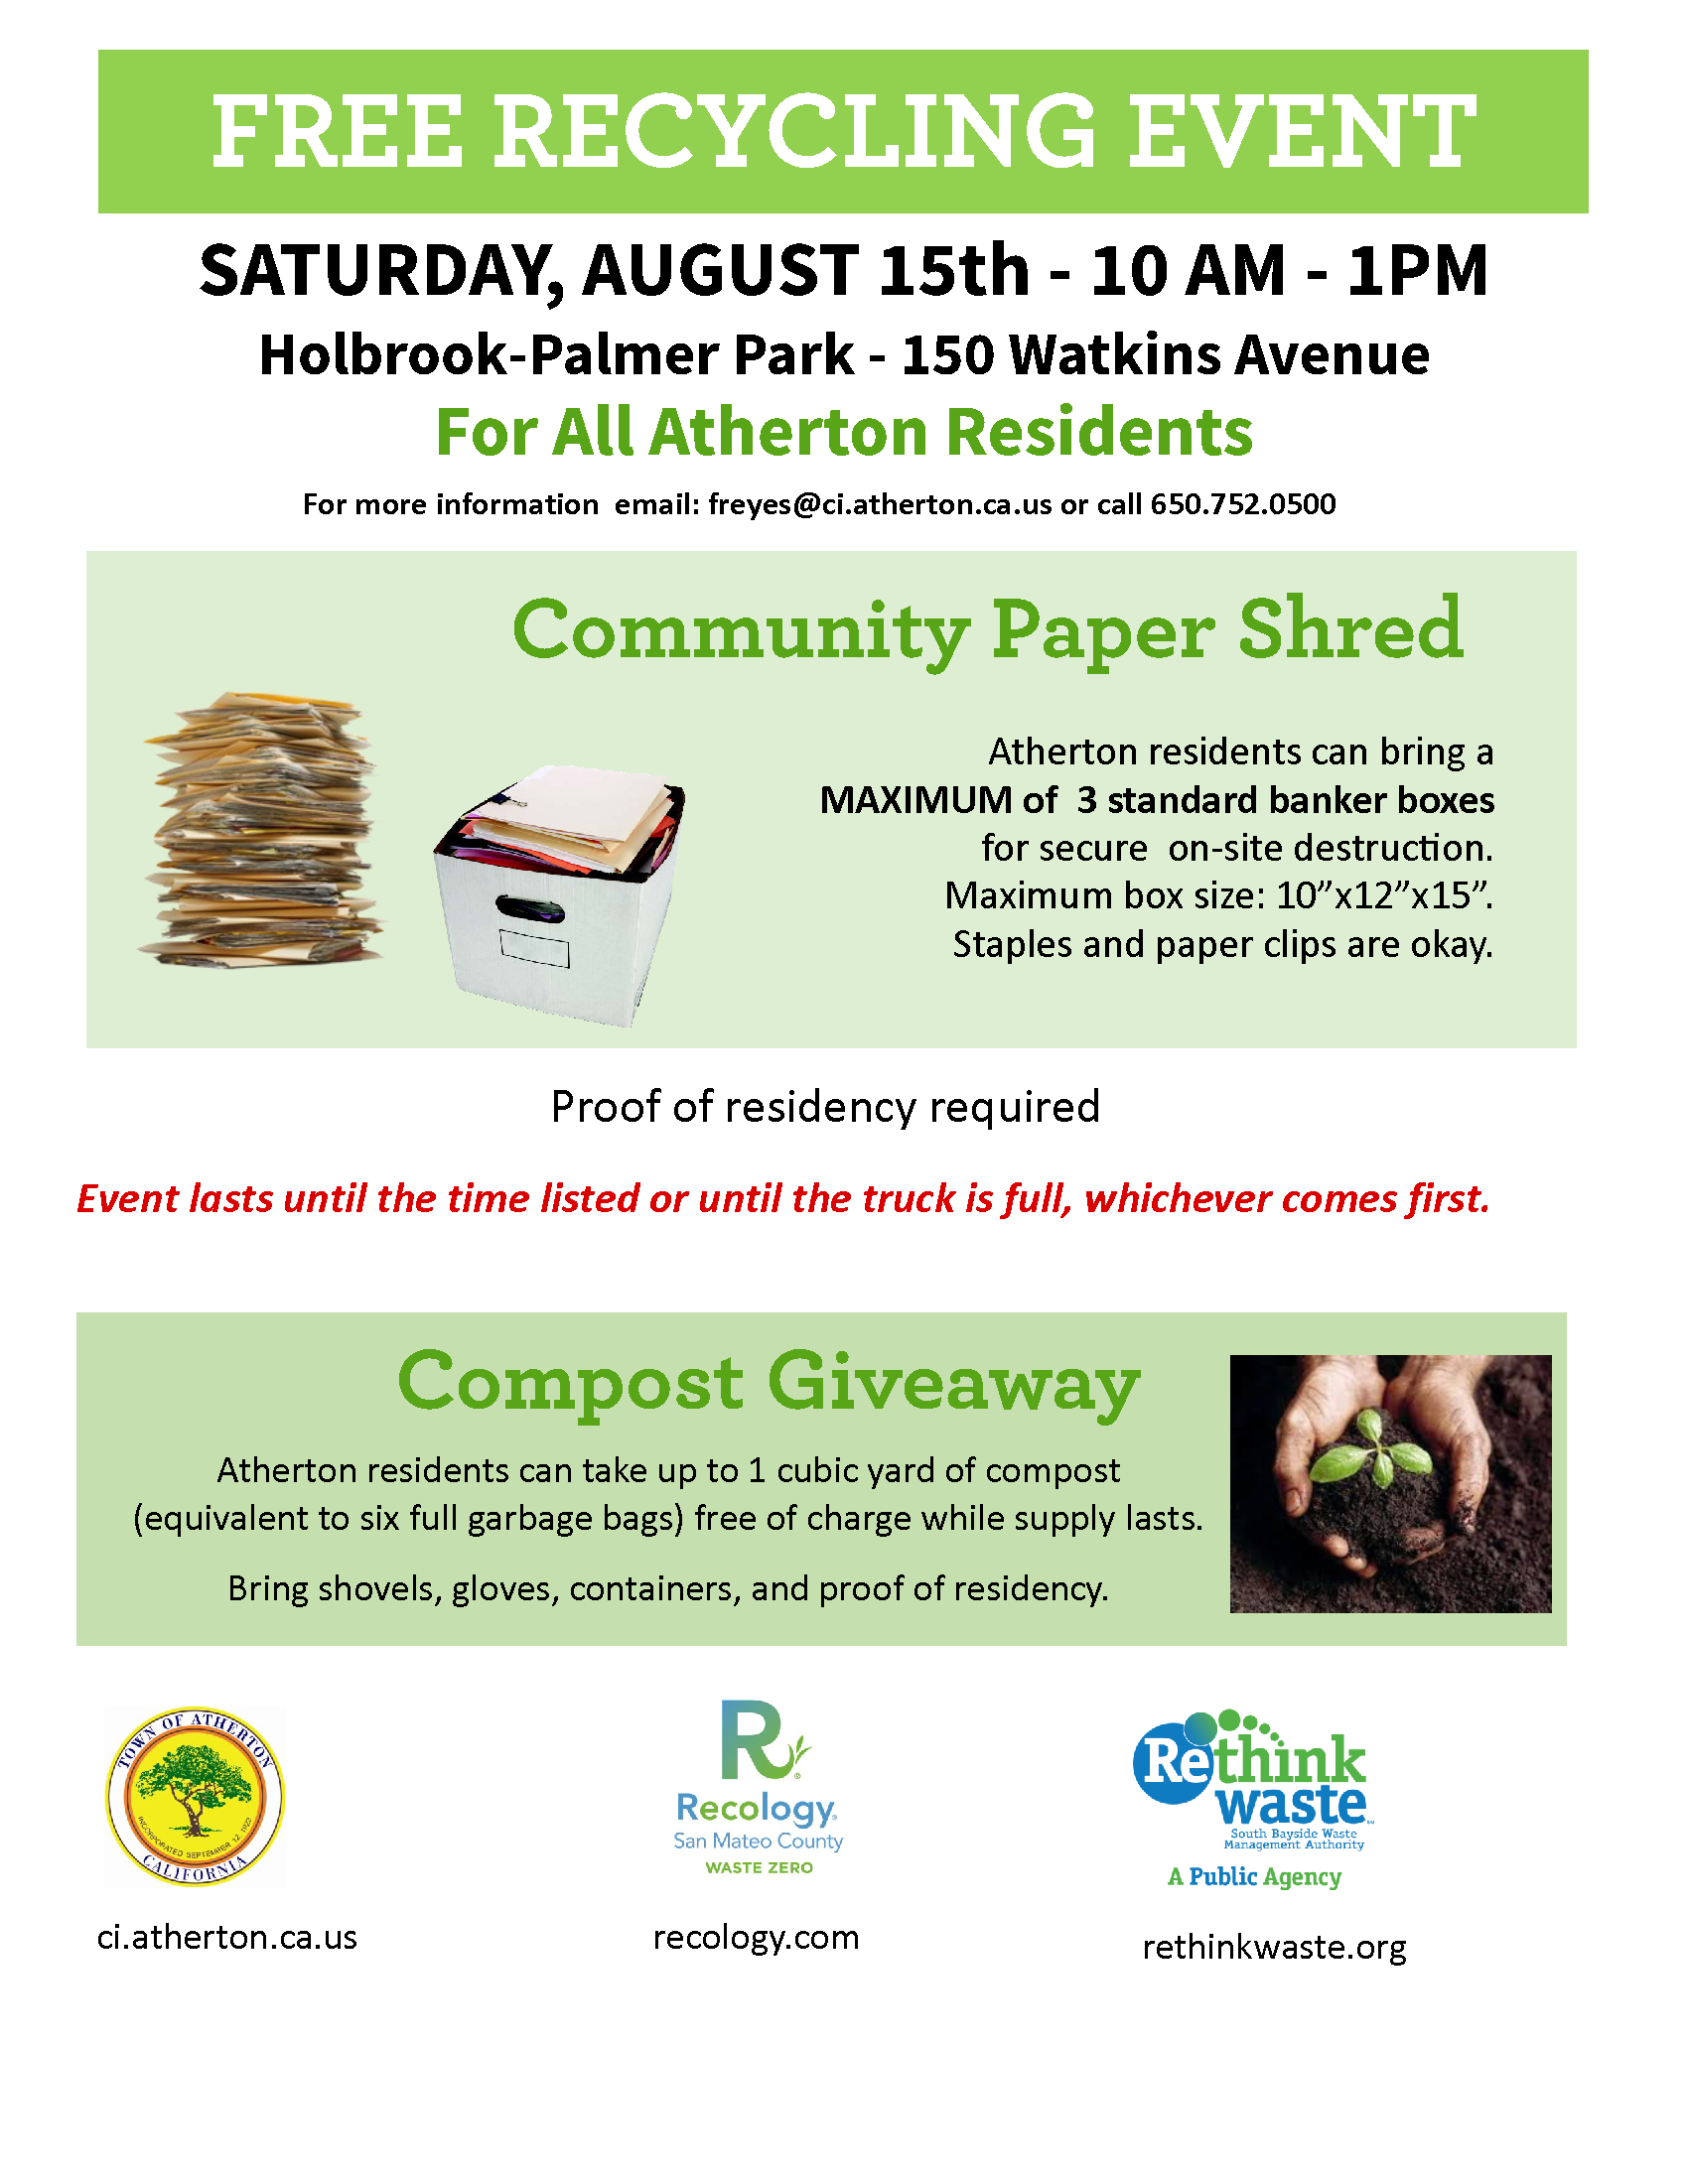 Atherton 2020 E-Waste Shred and Compost Poster_8.15rev1